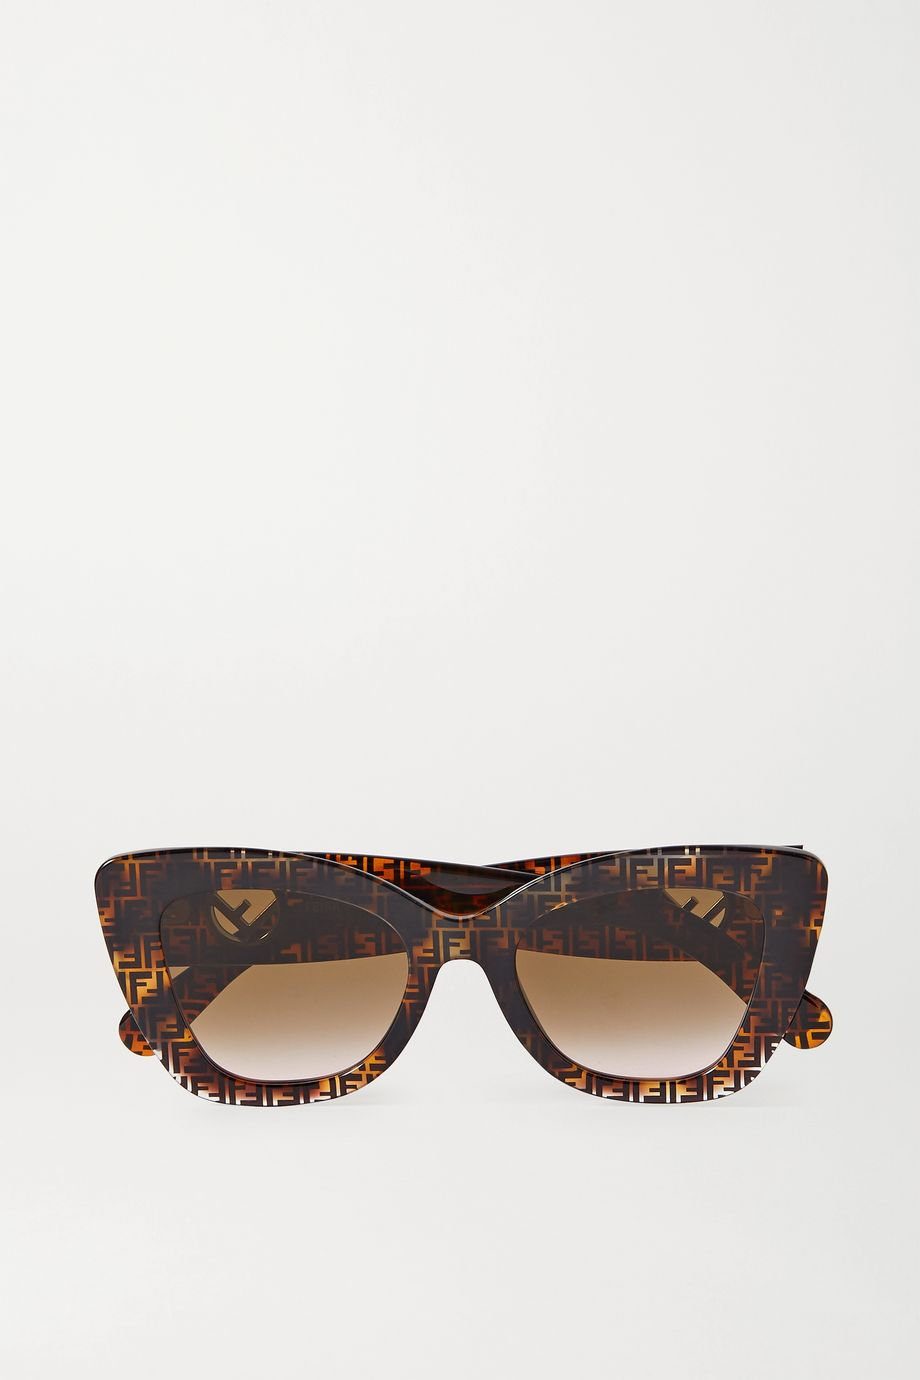 Fendi Cat-Eye-Sonnenbrille aus Azetat in Hornoptik